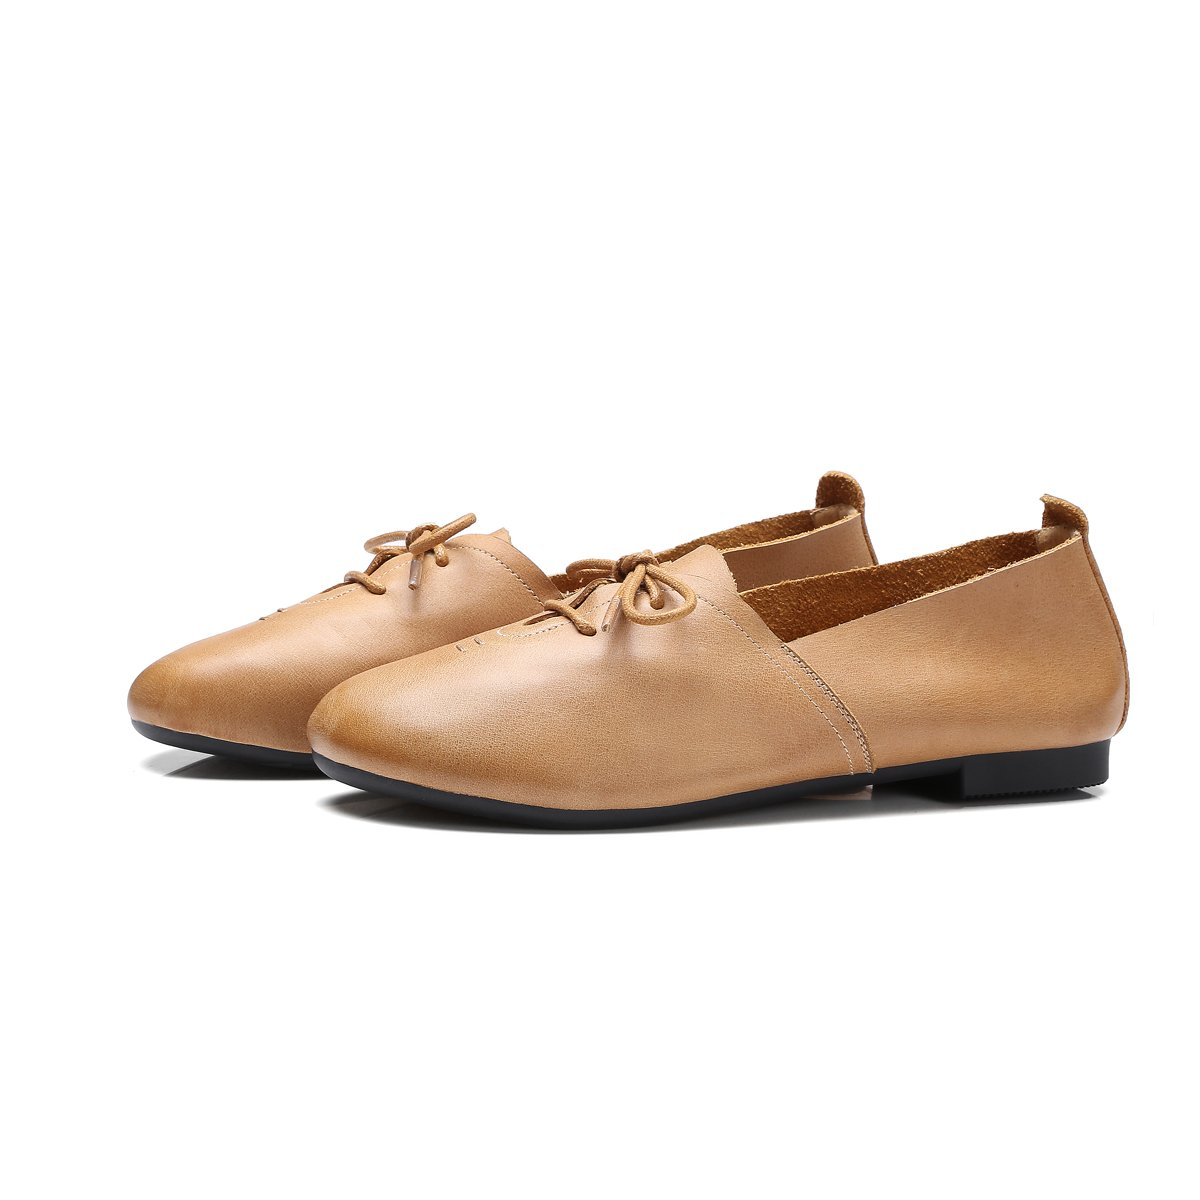 Womens Beautiful Sweet Genuine Leather Flats Shoes Comfortable Soft Simple Design Round Toe Shoes Women